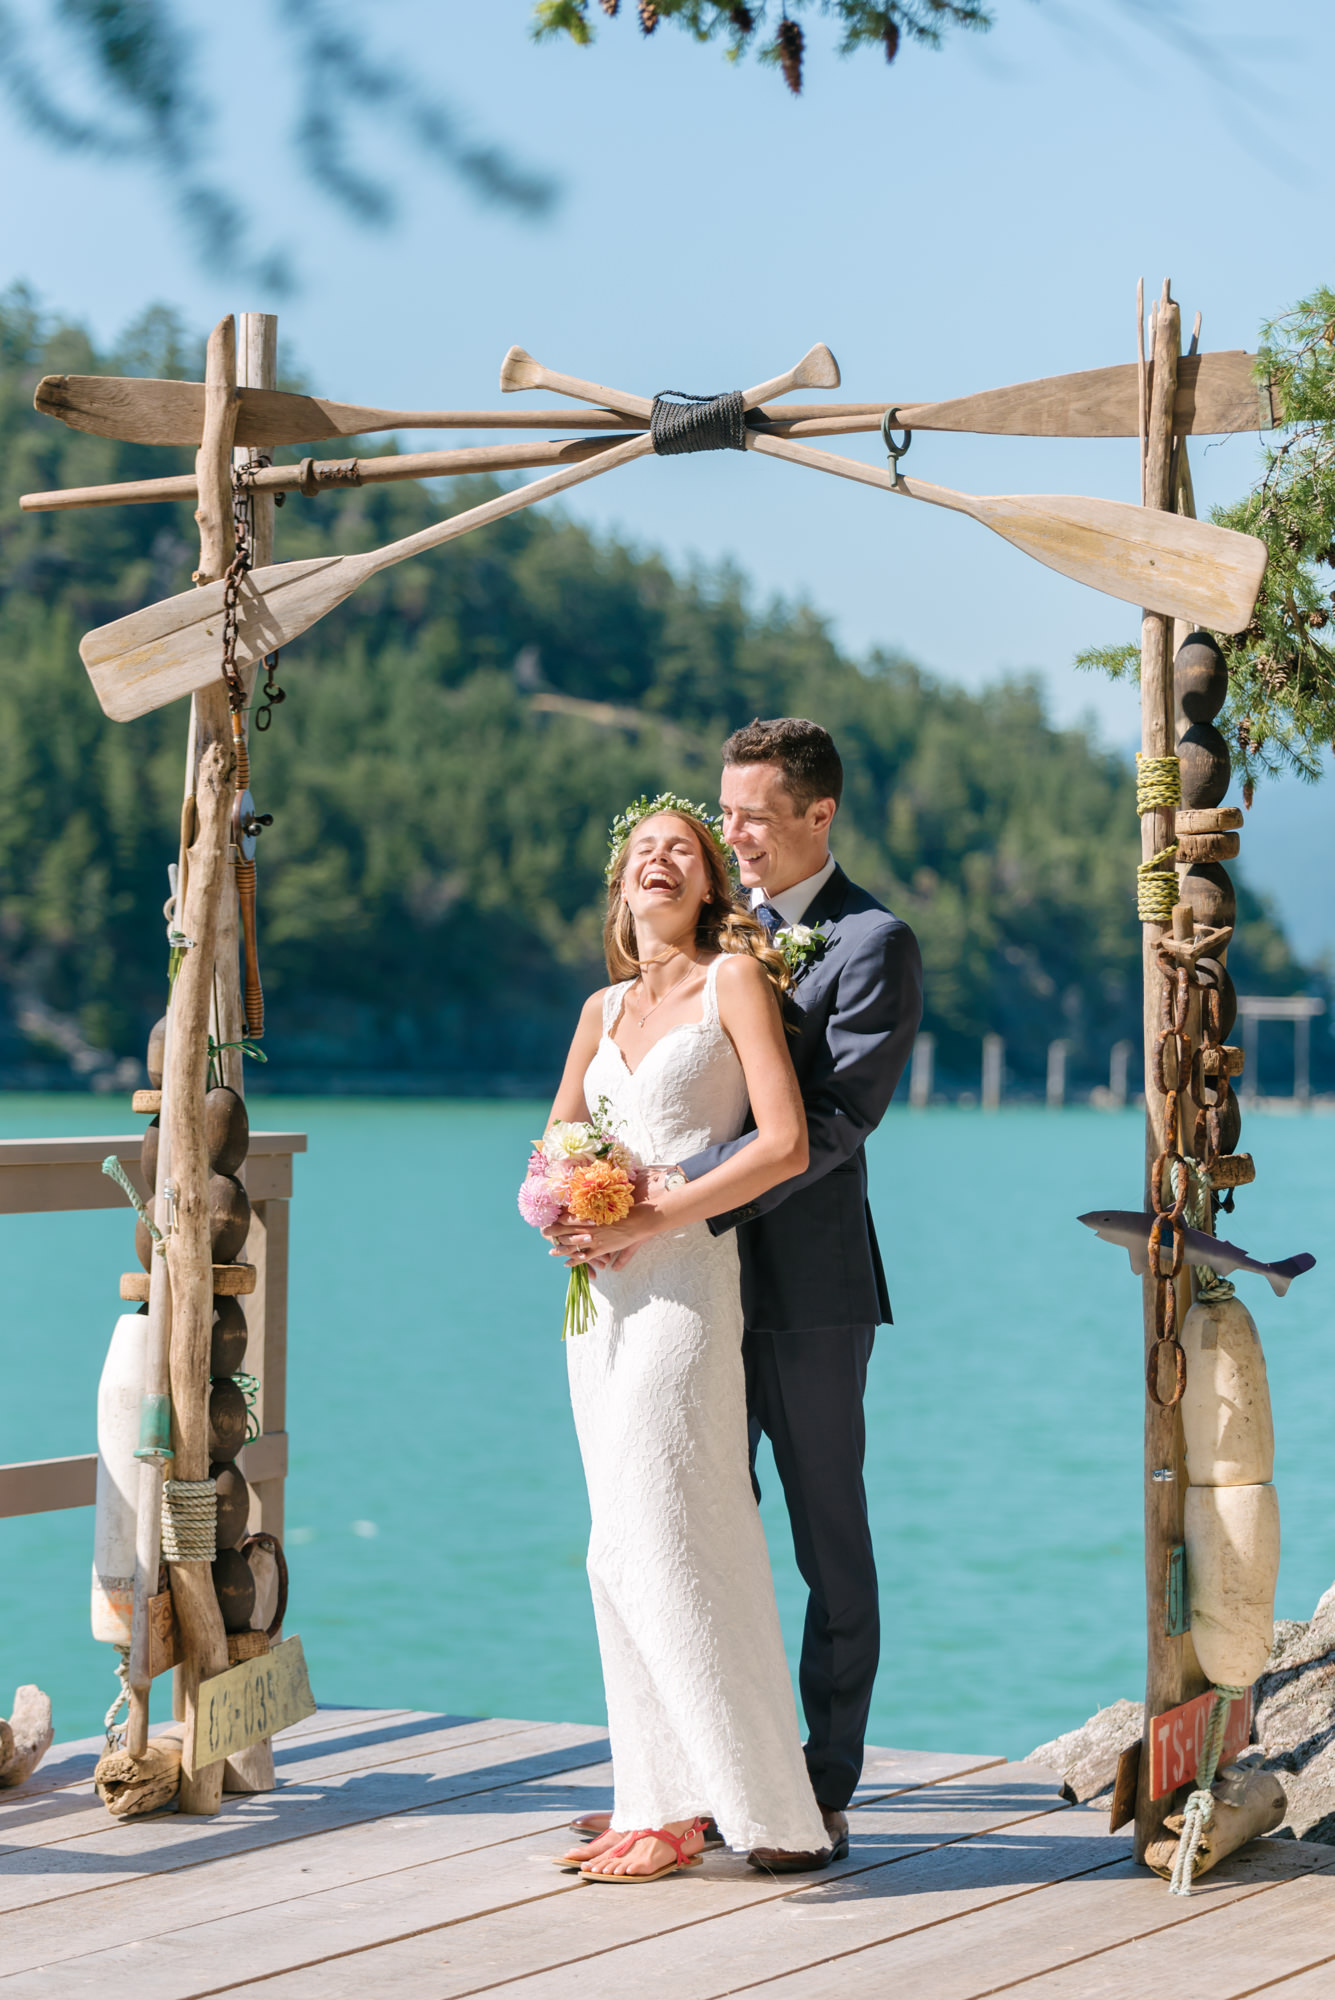 bowen_island_wedding_photographer_vancouver152412_11_kahophotography_weddingphotographer.jpg